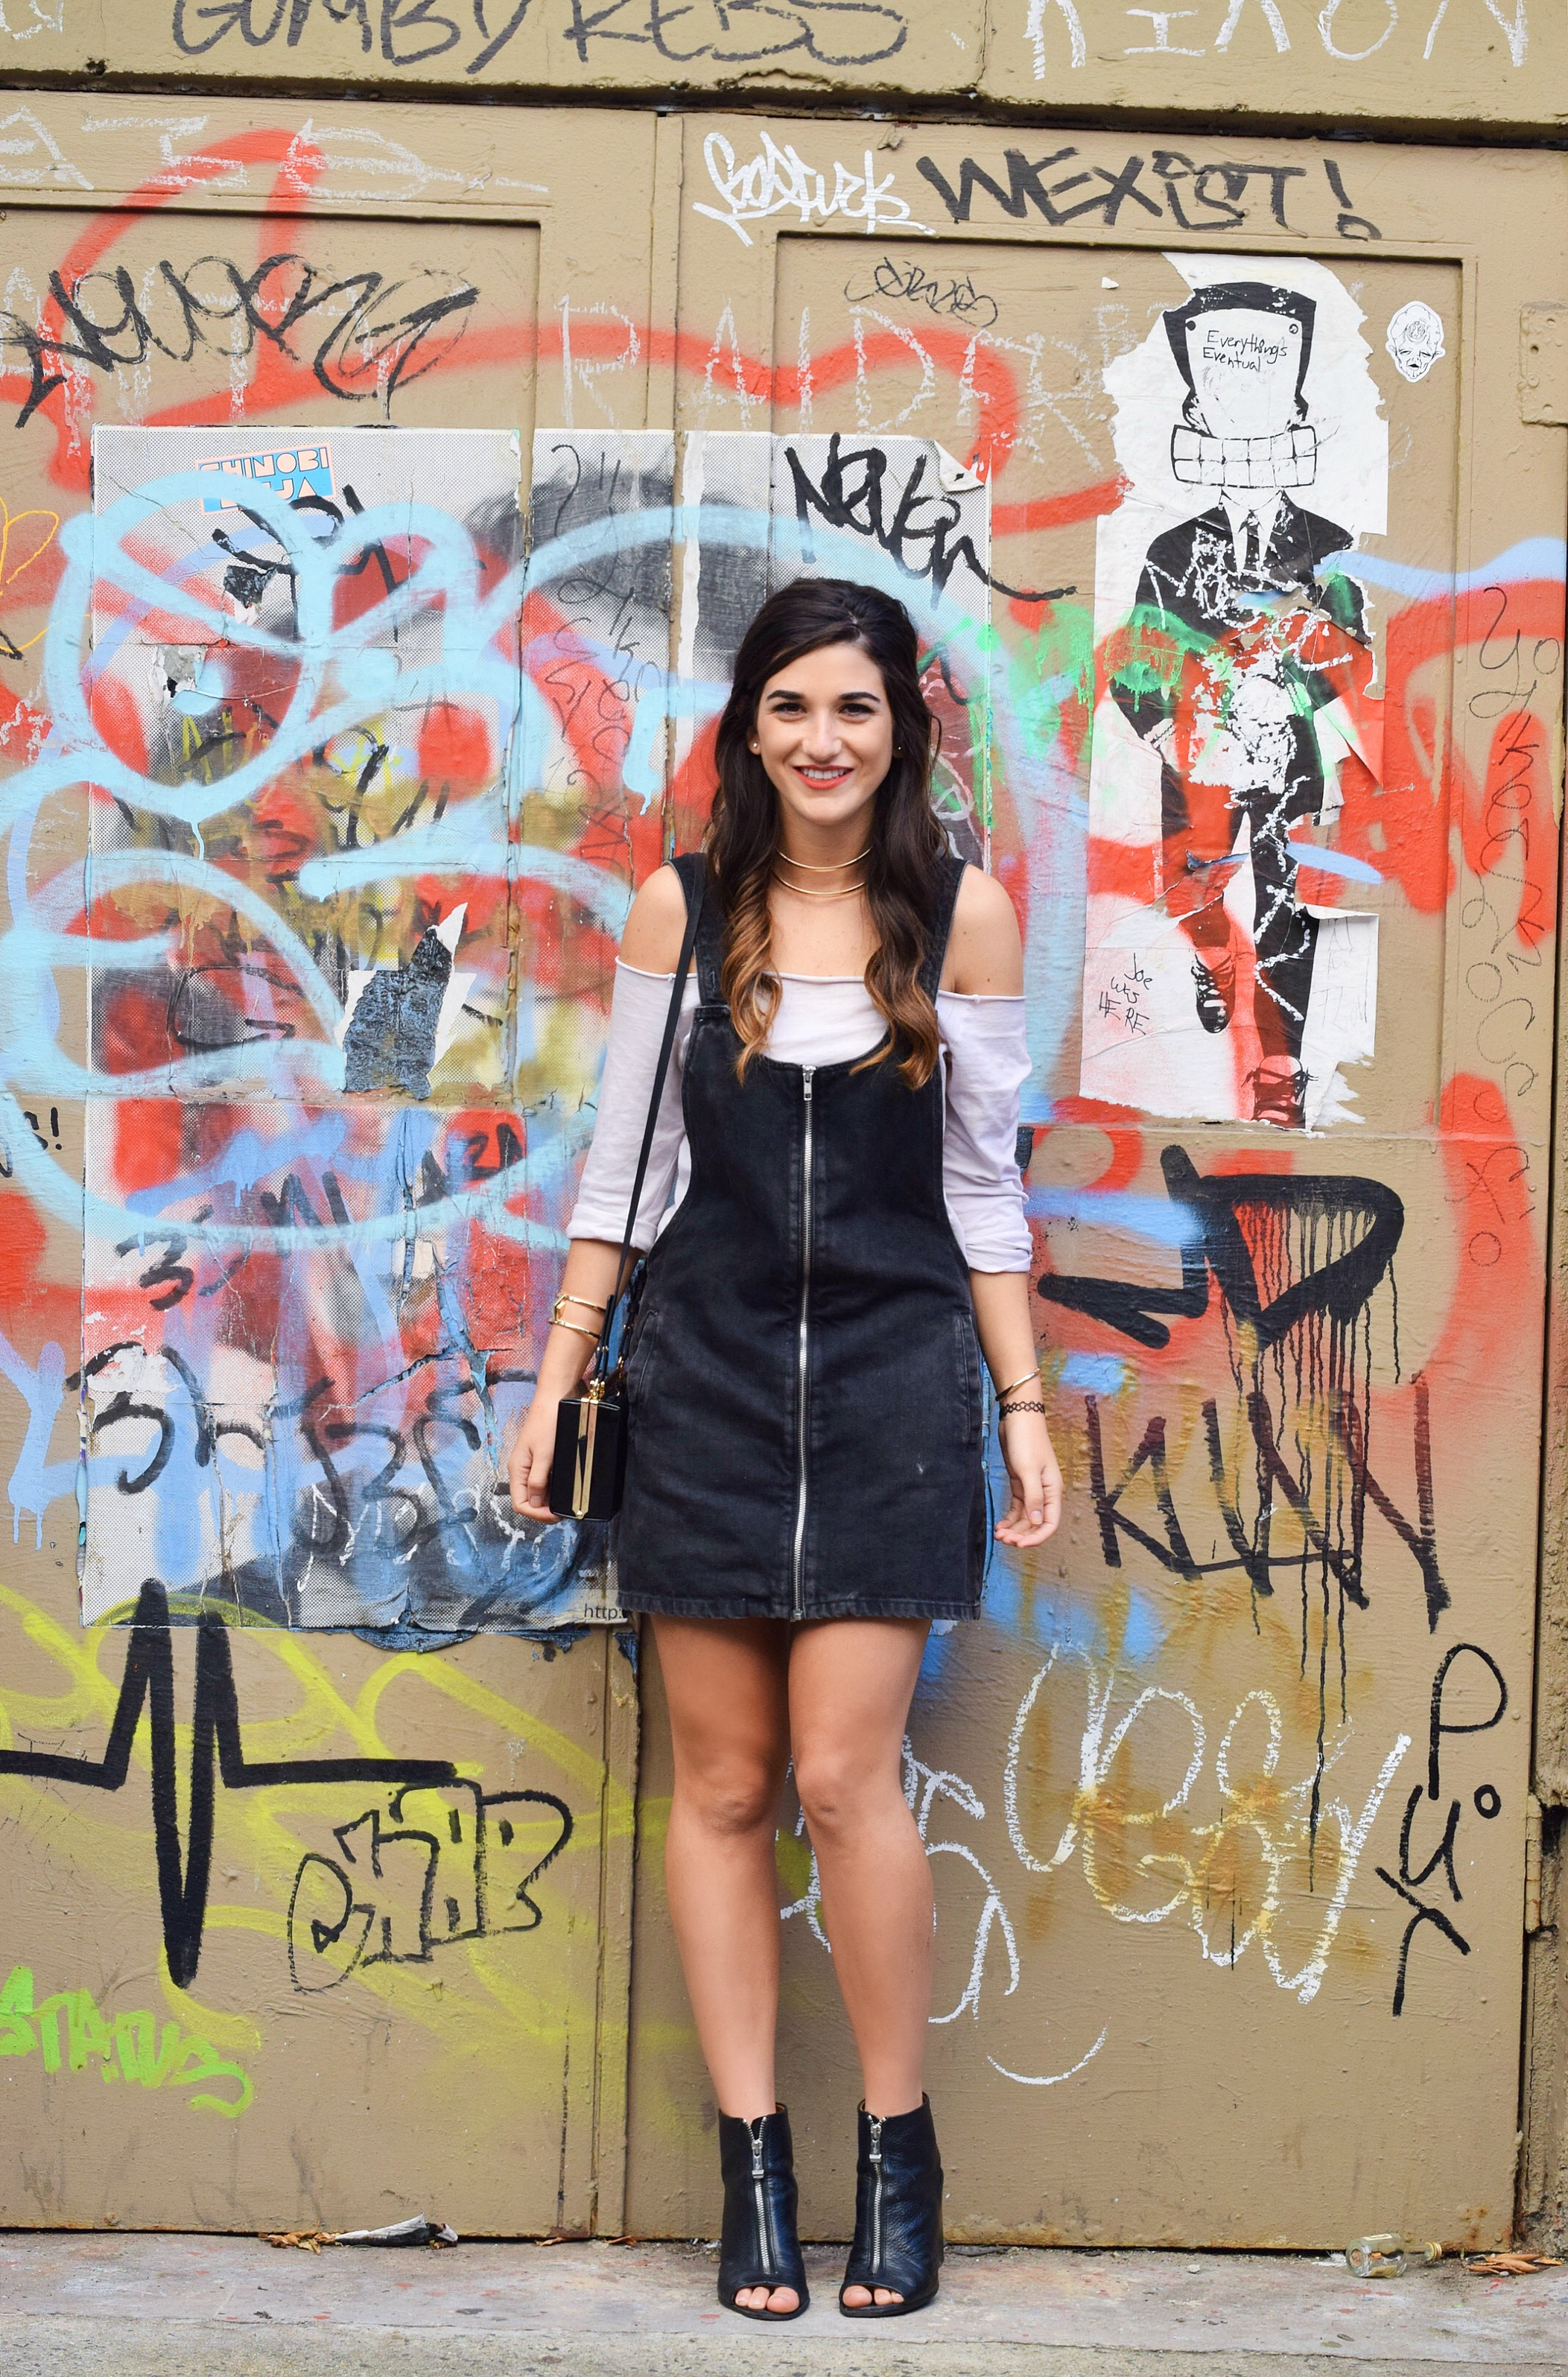 Jean Dress Overalls Off The Shoulder Top Louboutins & Love Fashion Blog Esther Santer Street Style NYC Hair Box Clutch Shoes Denim Gold Jewelry Model Girl Women Zara Trendy Outfit OOTD Bag Collar Necklace Fall Inspo Shop Zipper Black Booties Nordstrom.JPG